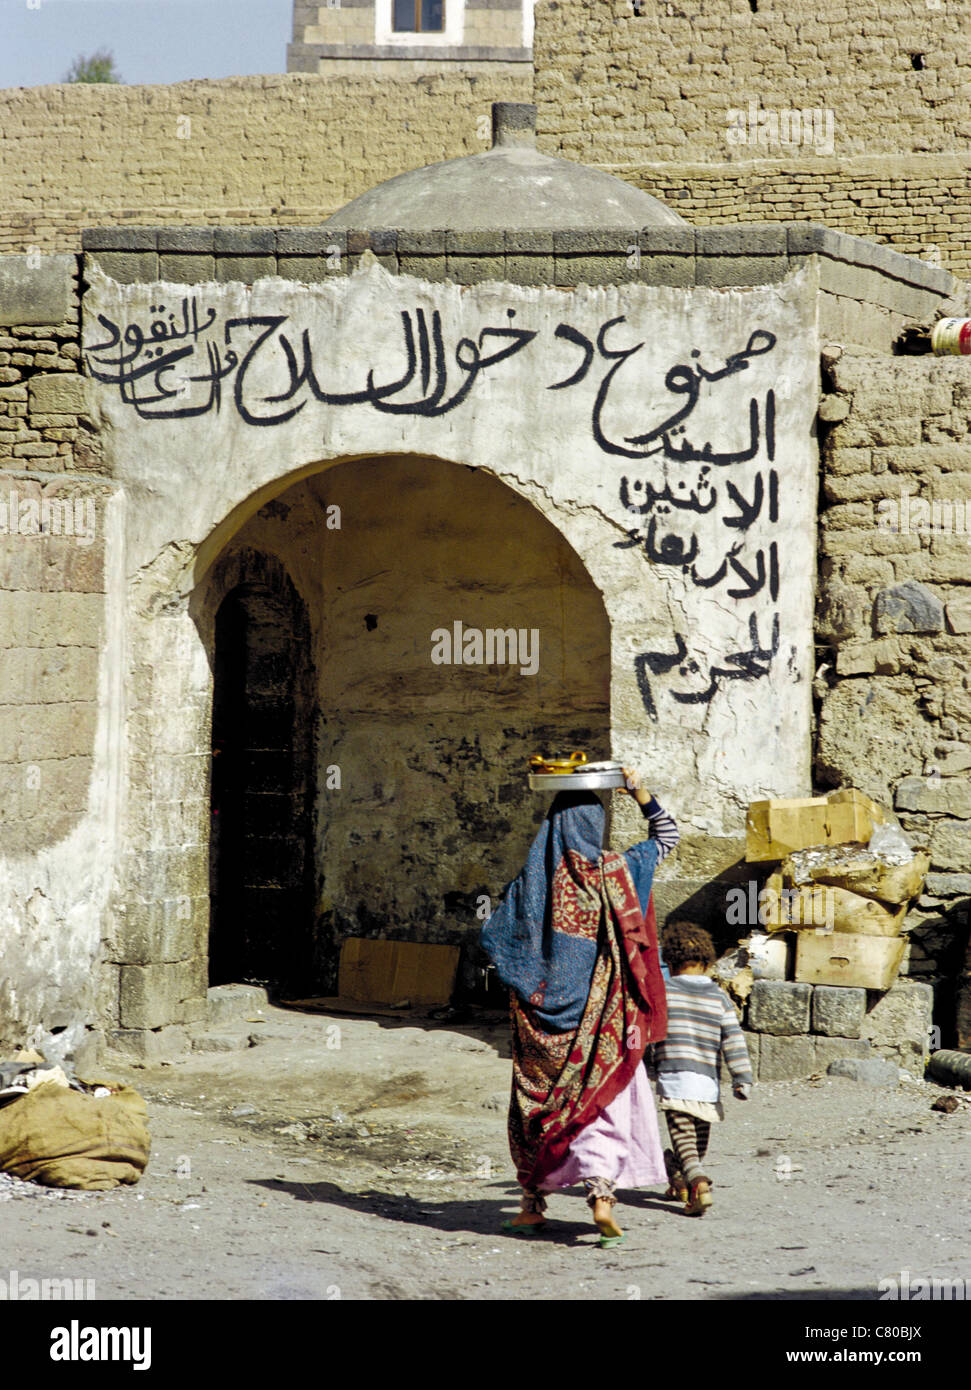 Yemeni woman and child entering a building with Arabic writing over the doorway in the Old City of Sana'a, Yemen - Stock Image